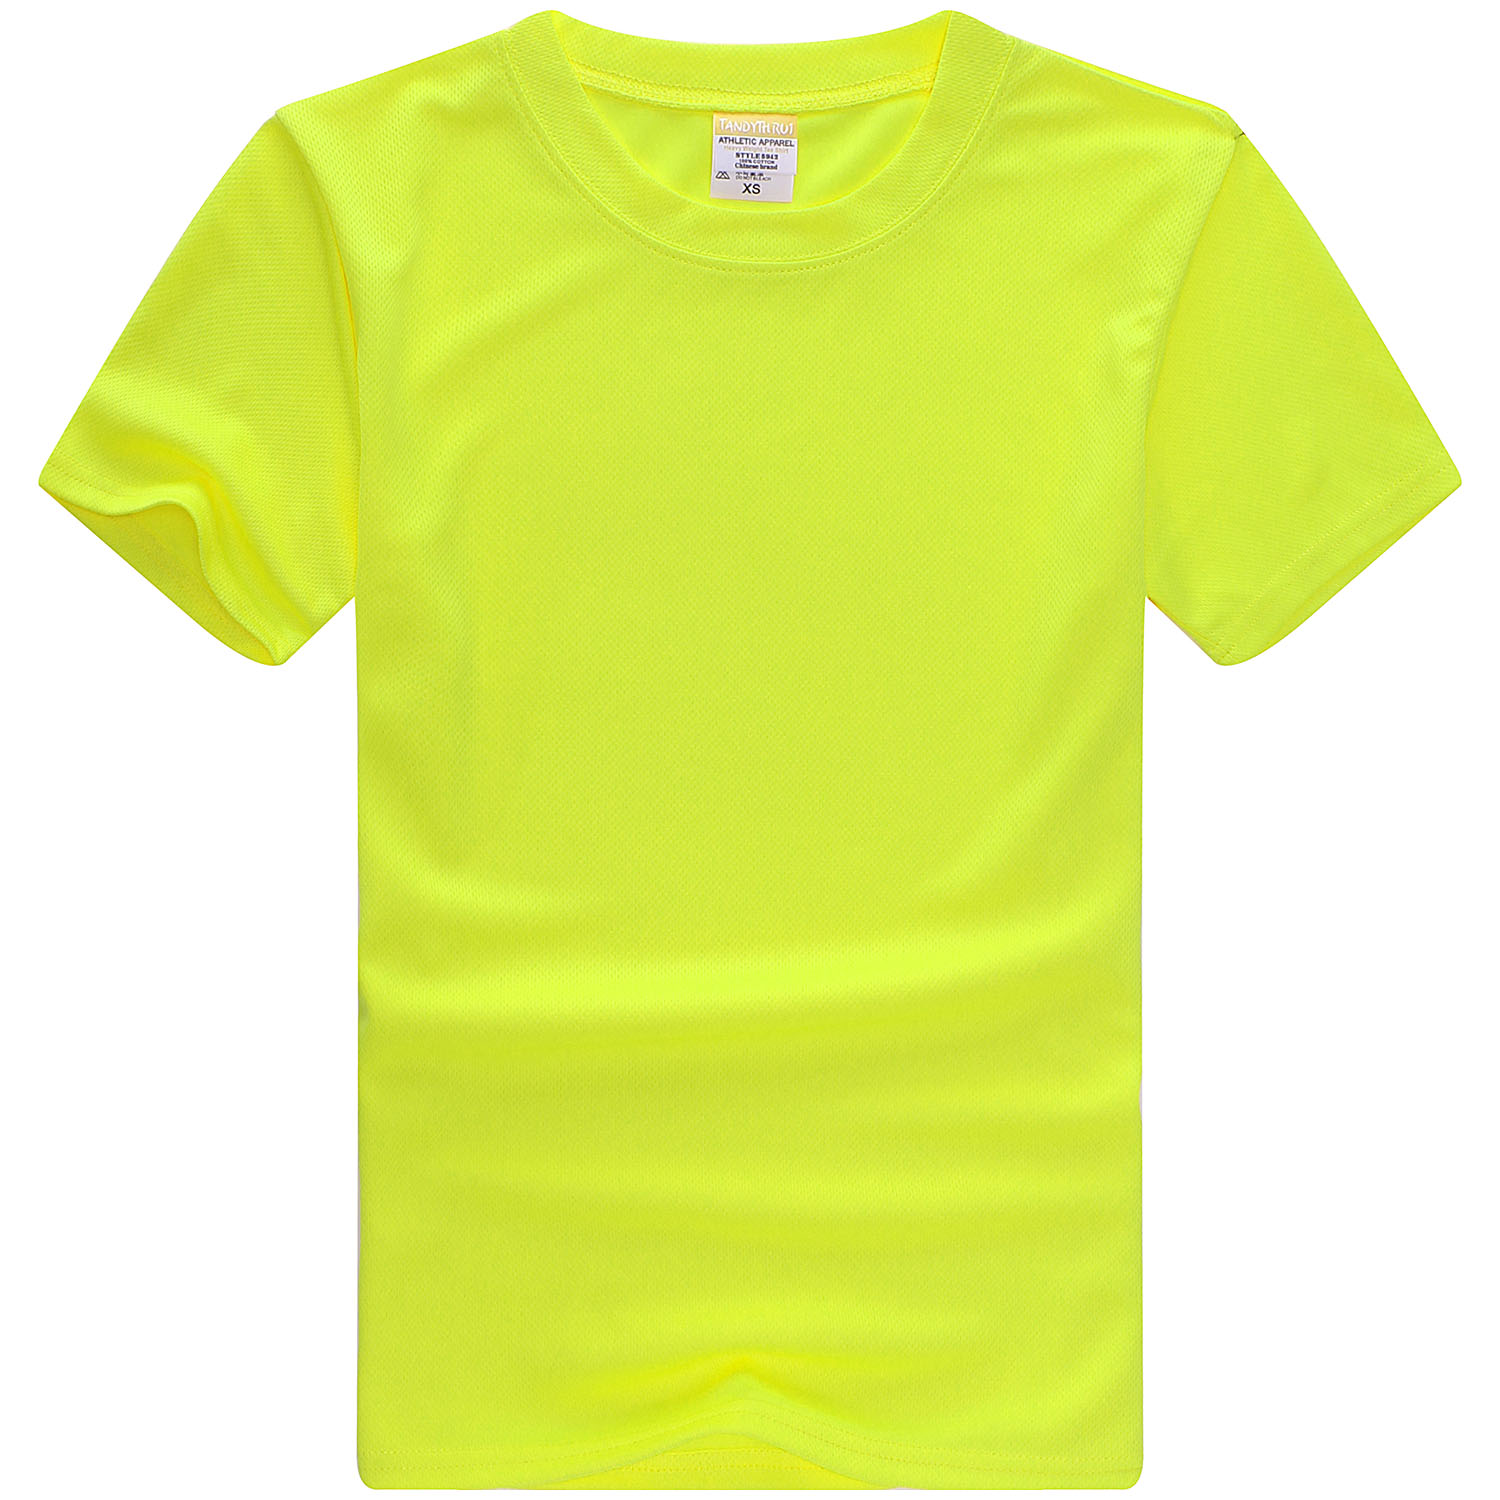 160g 75D Sublimation Blank Mesh Solid Color Round Neck  Polyester T-Shirt 10pcs